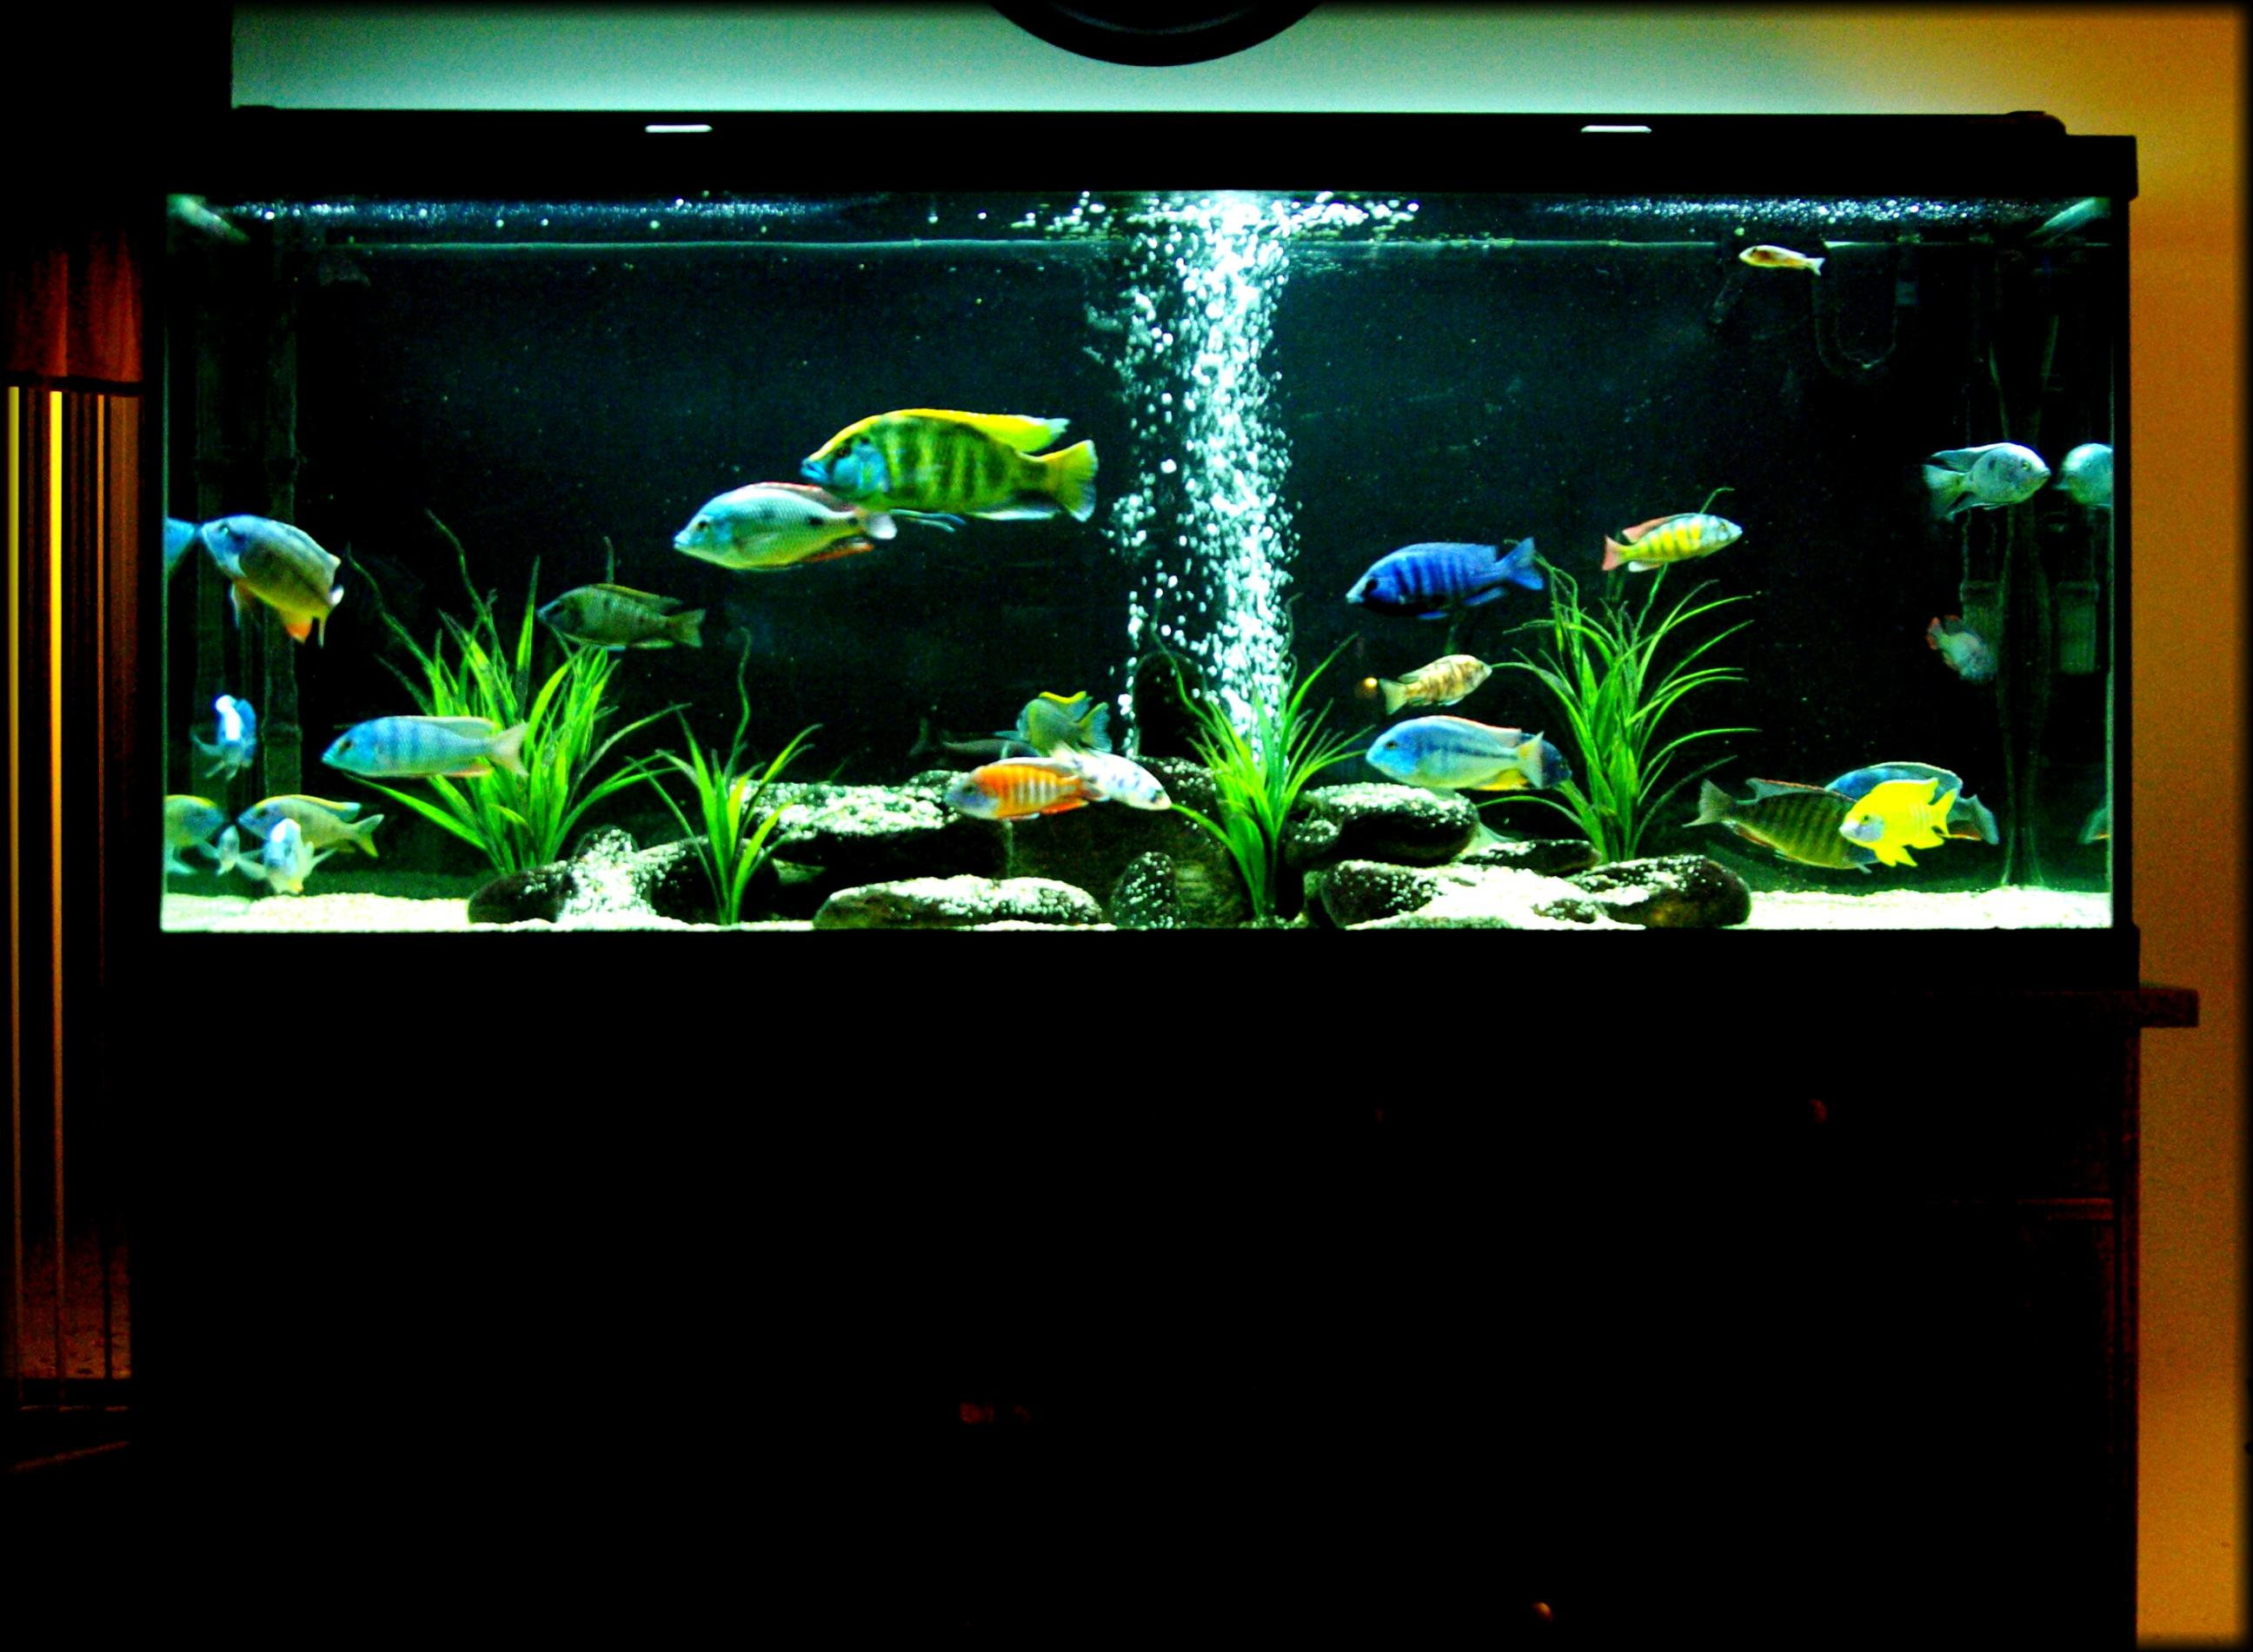 cichlids.com: Our 120gal. All male African Hap/Peacock tank...